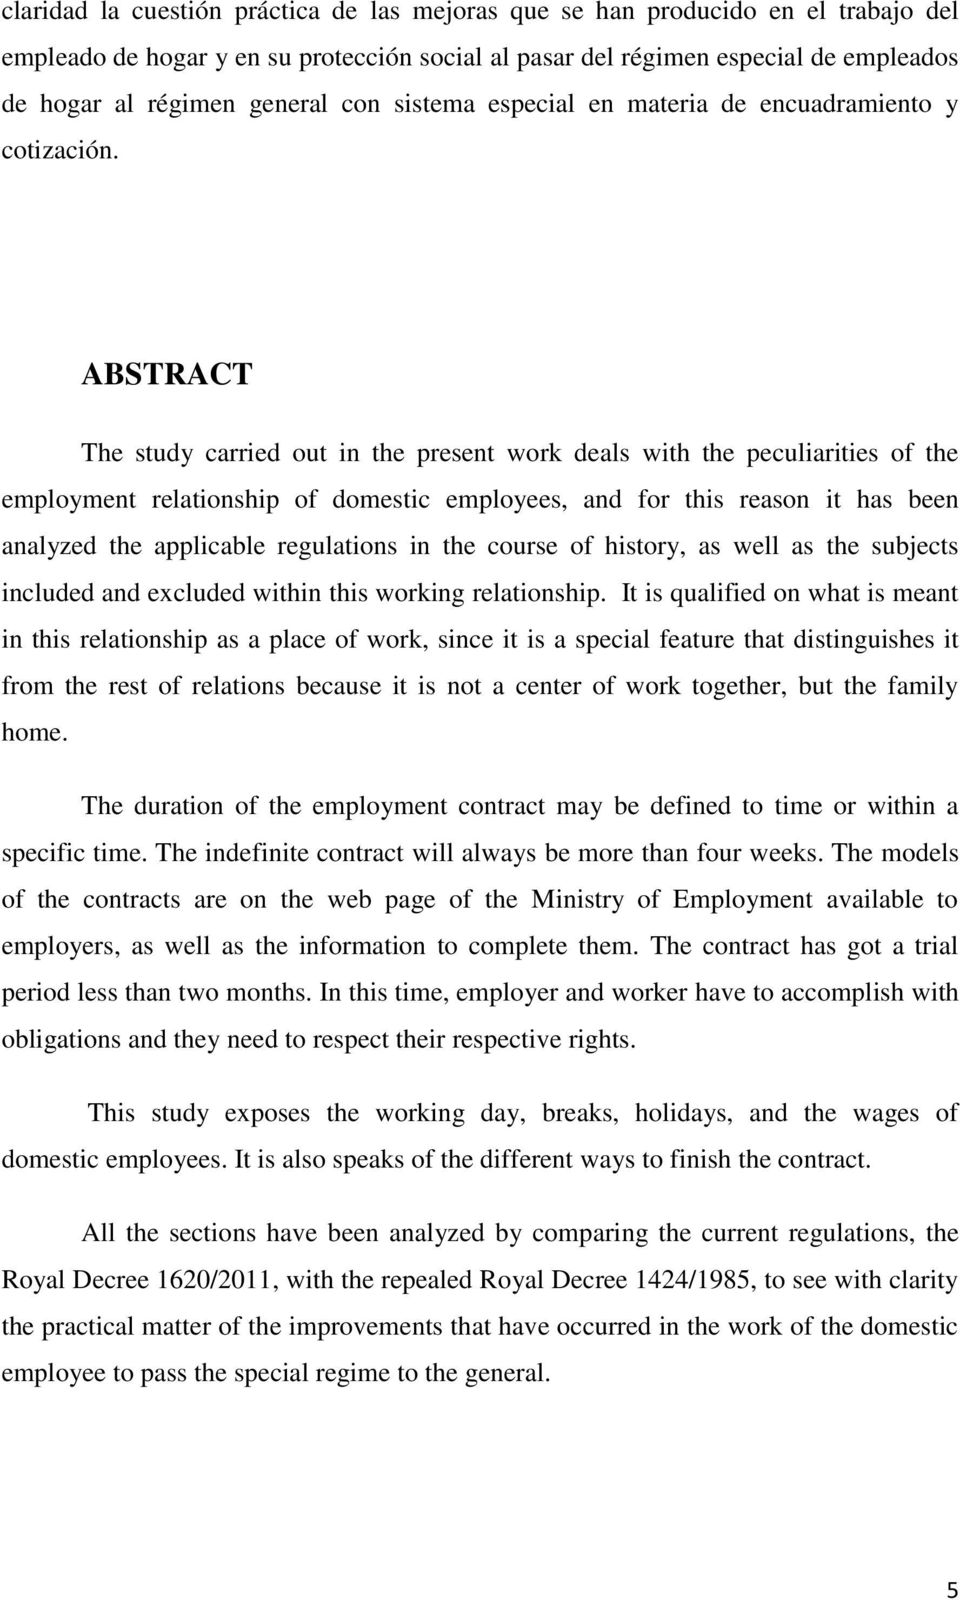 ABSTRACT The study carried out in the present work deals with the peculiarities of the employment relationship of domestic employees, and for this reason it has been analyzed the applicable